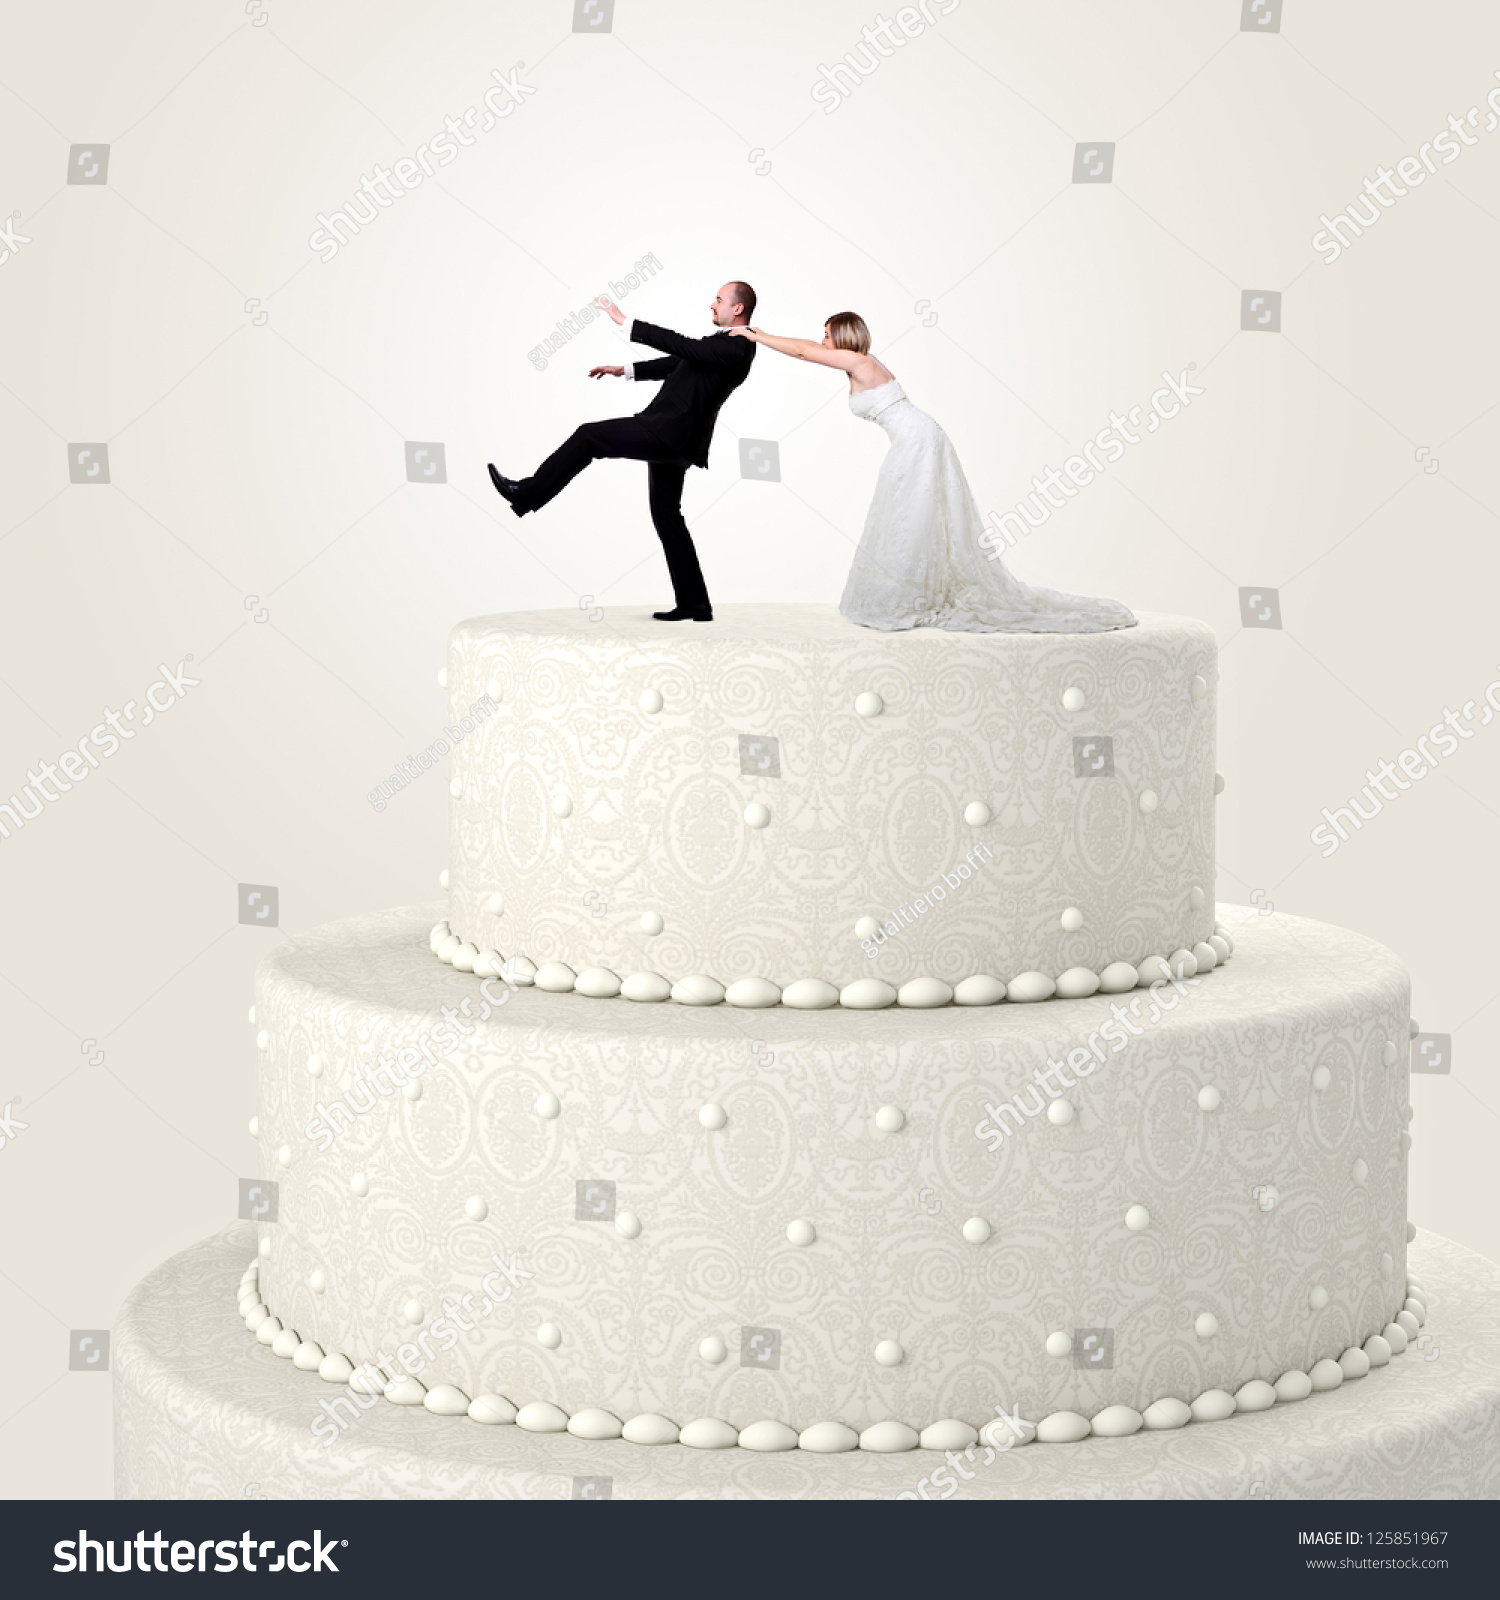 cutting of wedding cake symbolism 3d wedding cake situation stock photo 13293